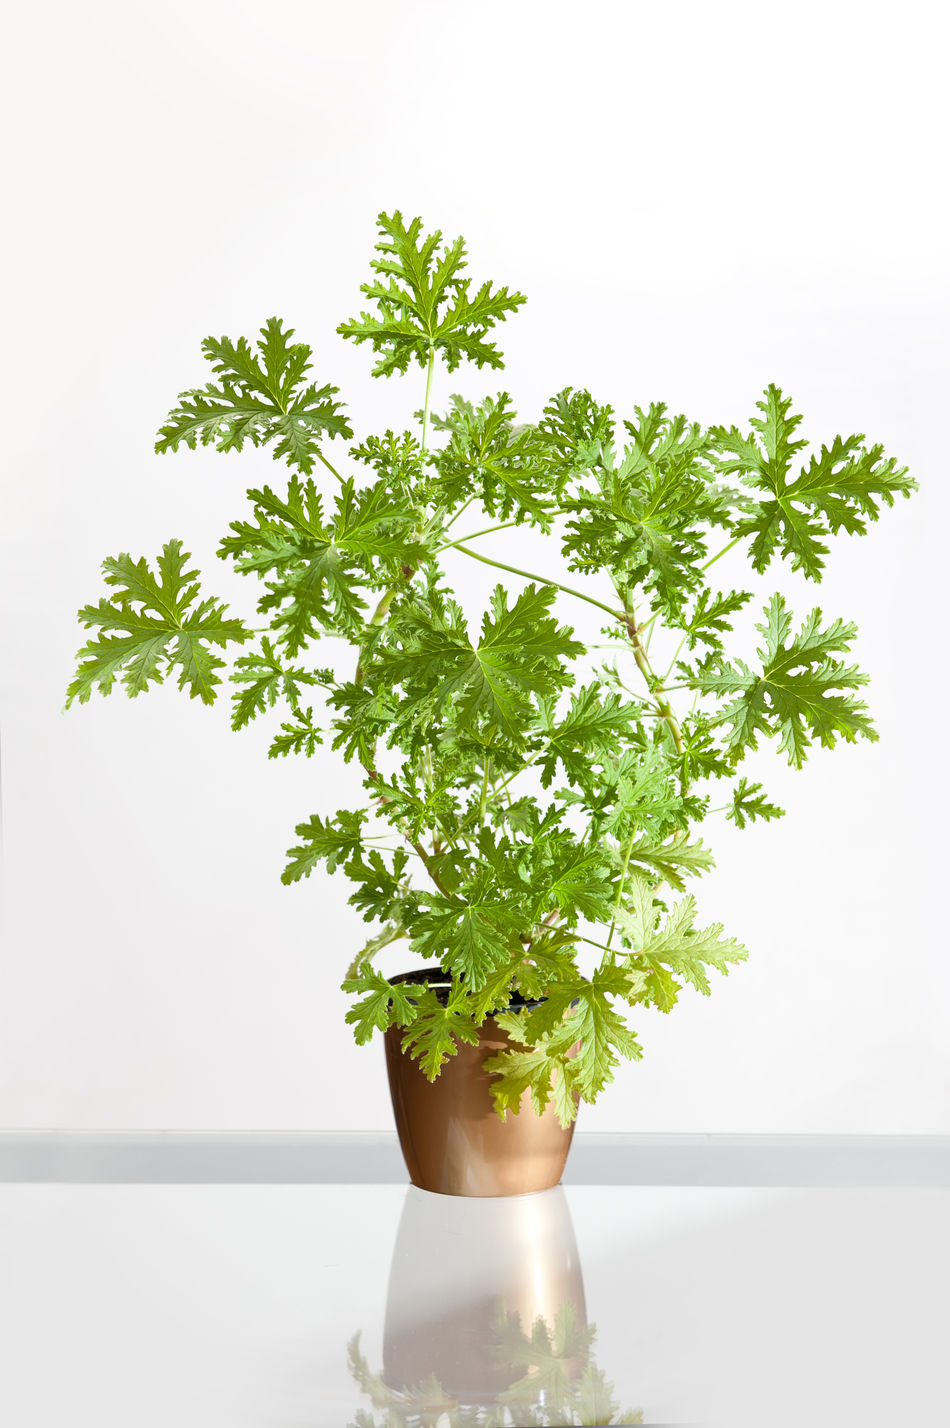 Pelargonium citrosum plant or Pelargonium graveolens, citrosa geranium, scented leaves of herb plant using in culinary and medicine, large flower grow in golden flowerpot, standing on glass in white background, vertical orientaton, nobody. Citrosa Citrosum Flower Flowerpot Foliage Geranium Graveolens Nature Pelargonium Plant Plant